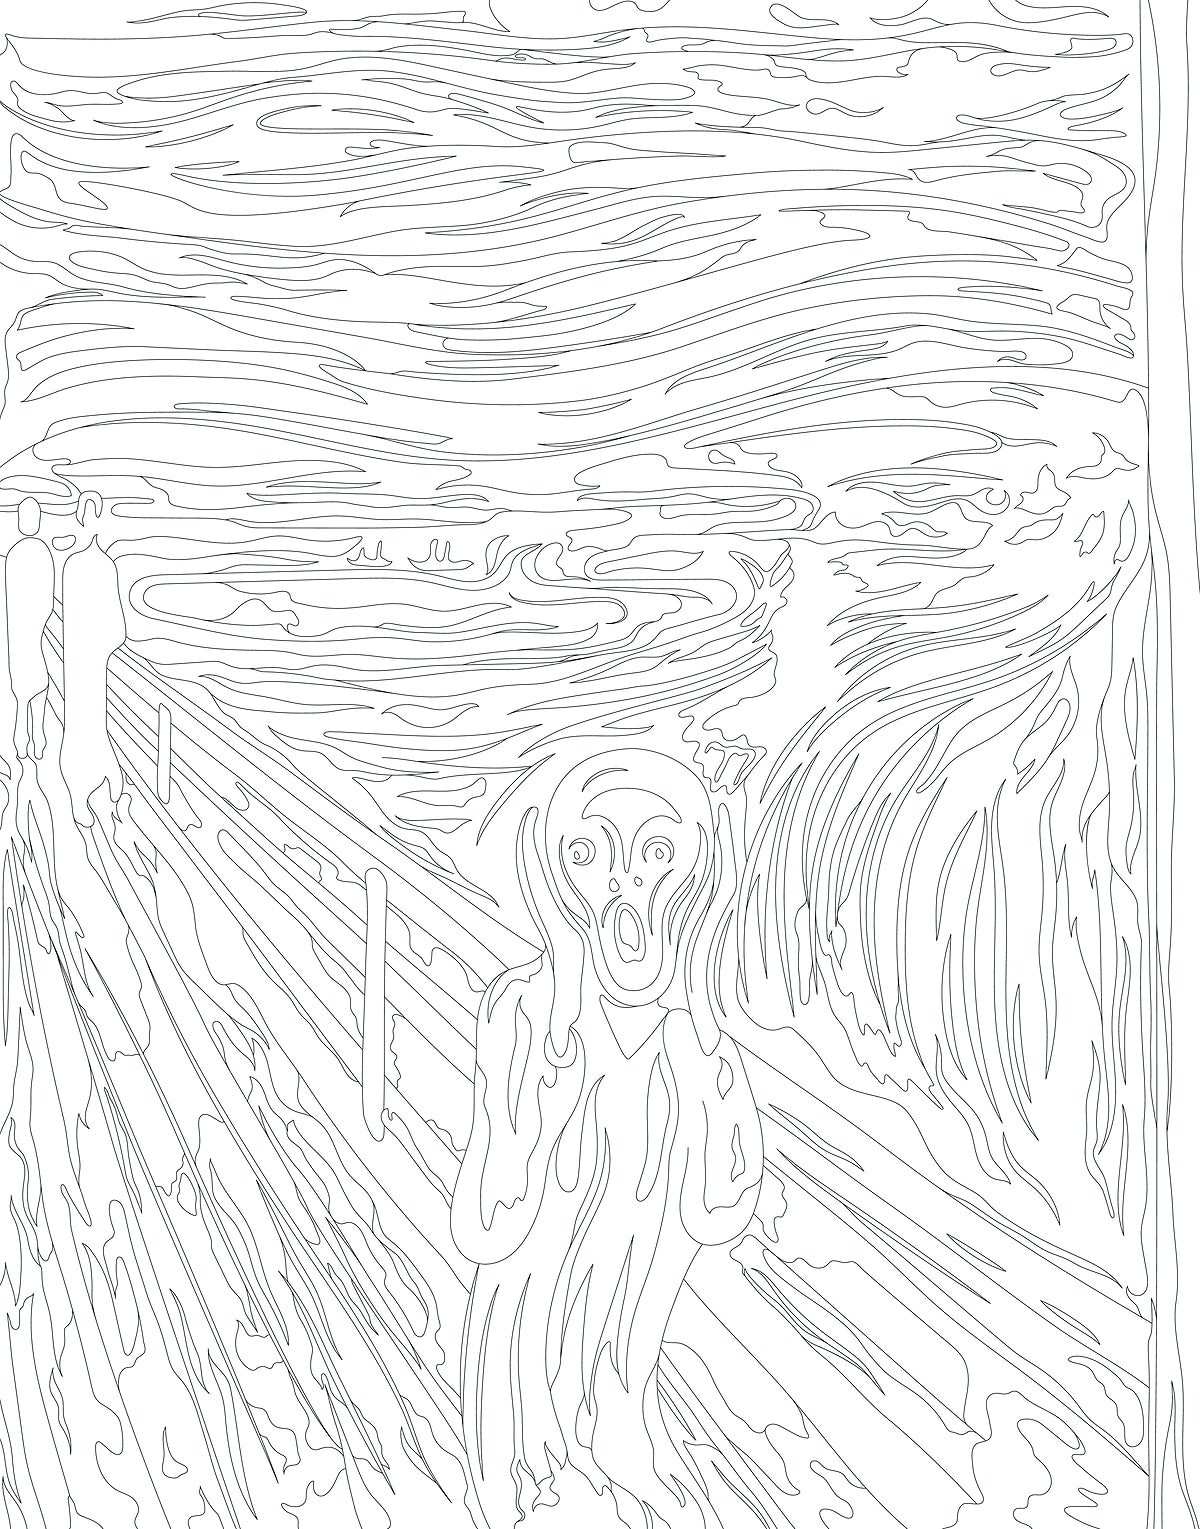 The Scream (1893) by Edvard Munch adult coloring page | Free photo - 2304570